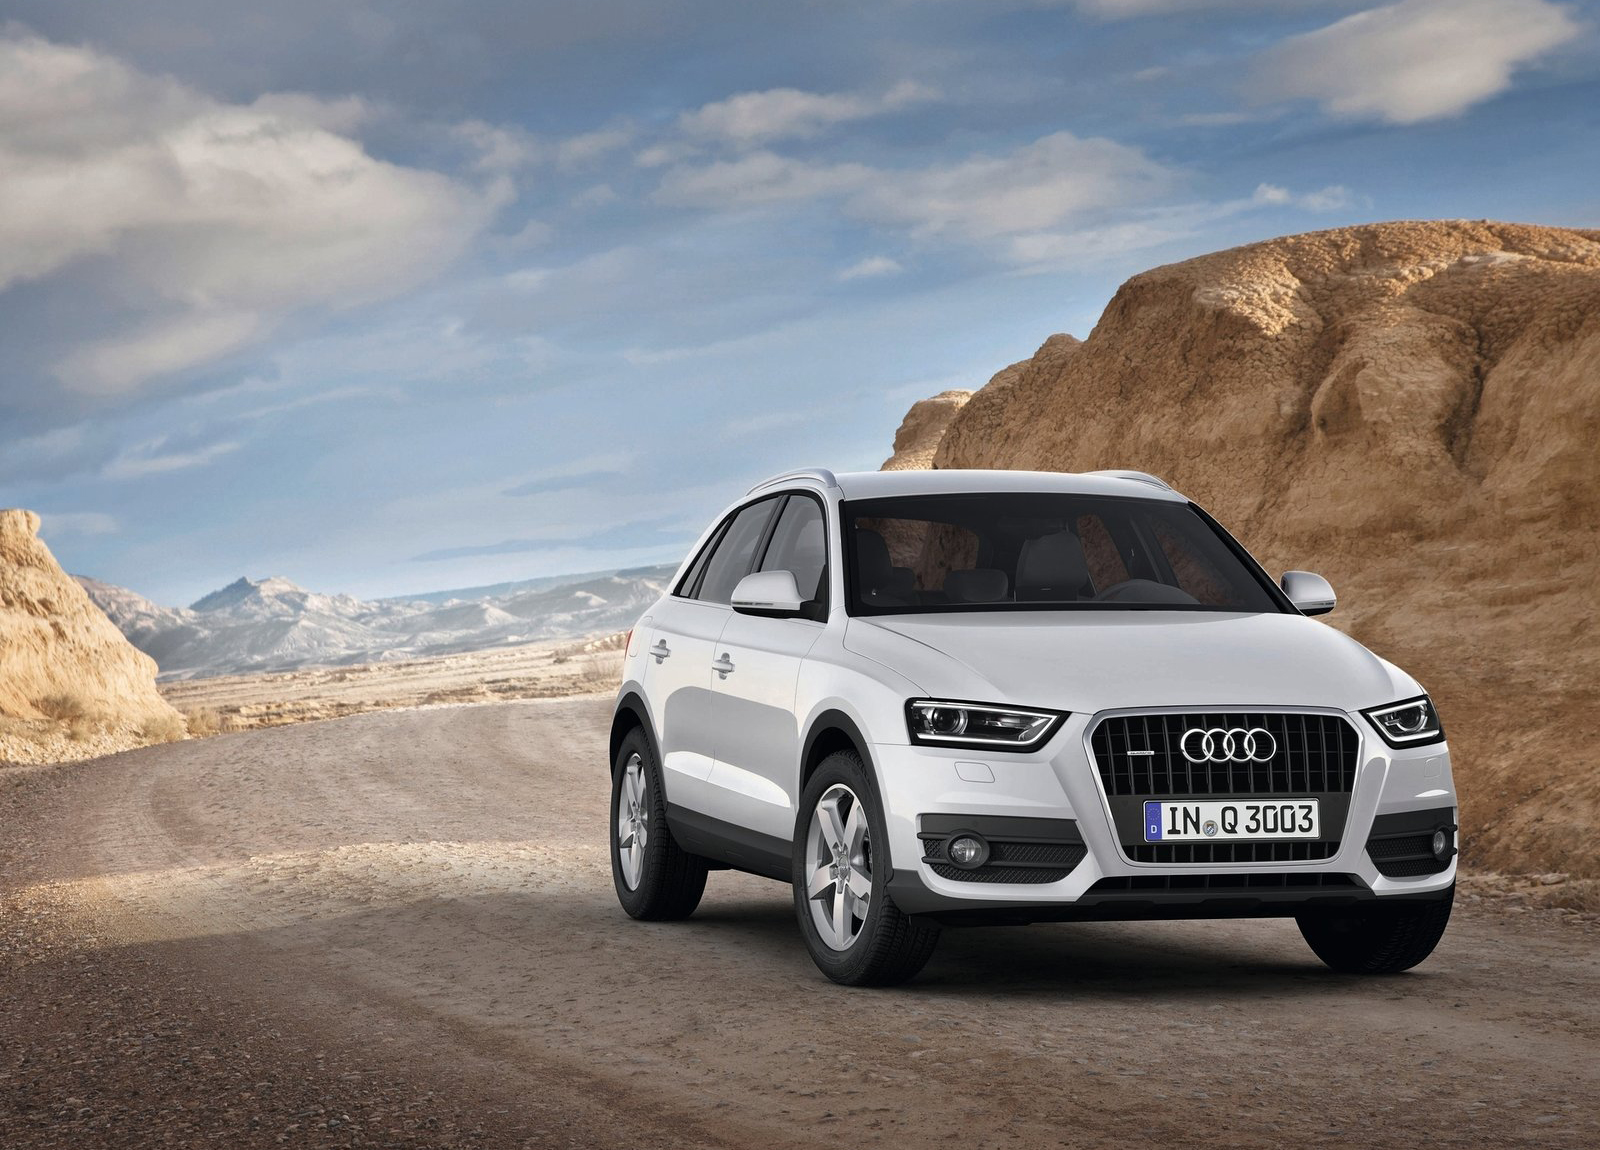 Audi Q3 HD Wallpapers